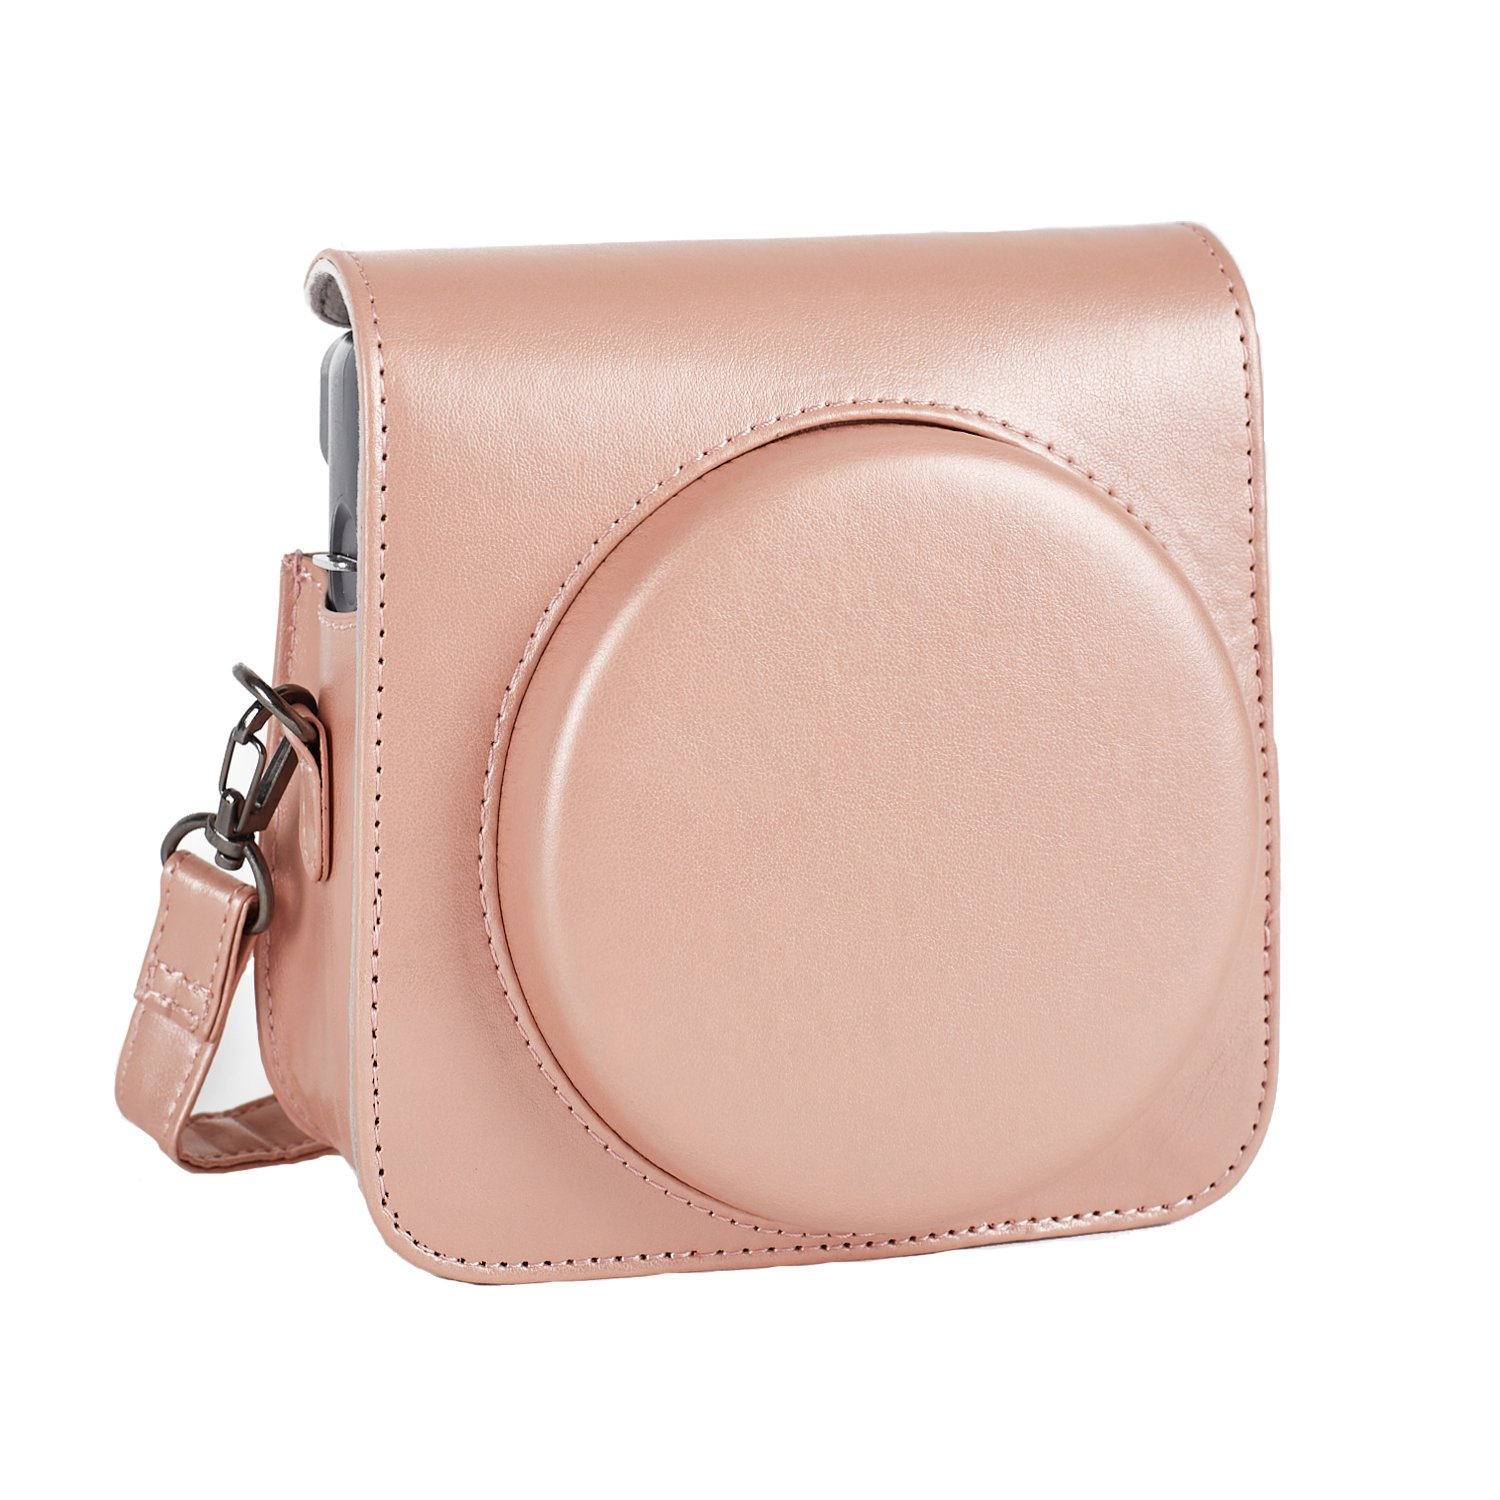 Phetium Protective Case for Fujifilm Instax Square SQ6 Instant Film Camera, Soft PU Leather Bag with Adjustable Shoulder Strap (Blush Gold)